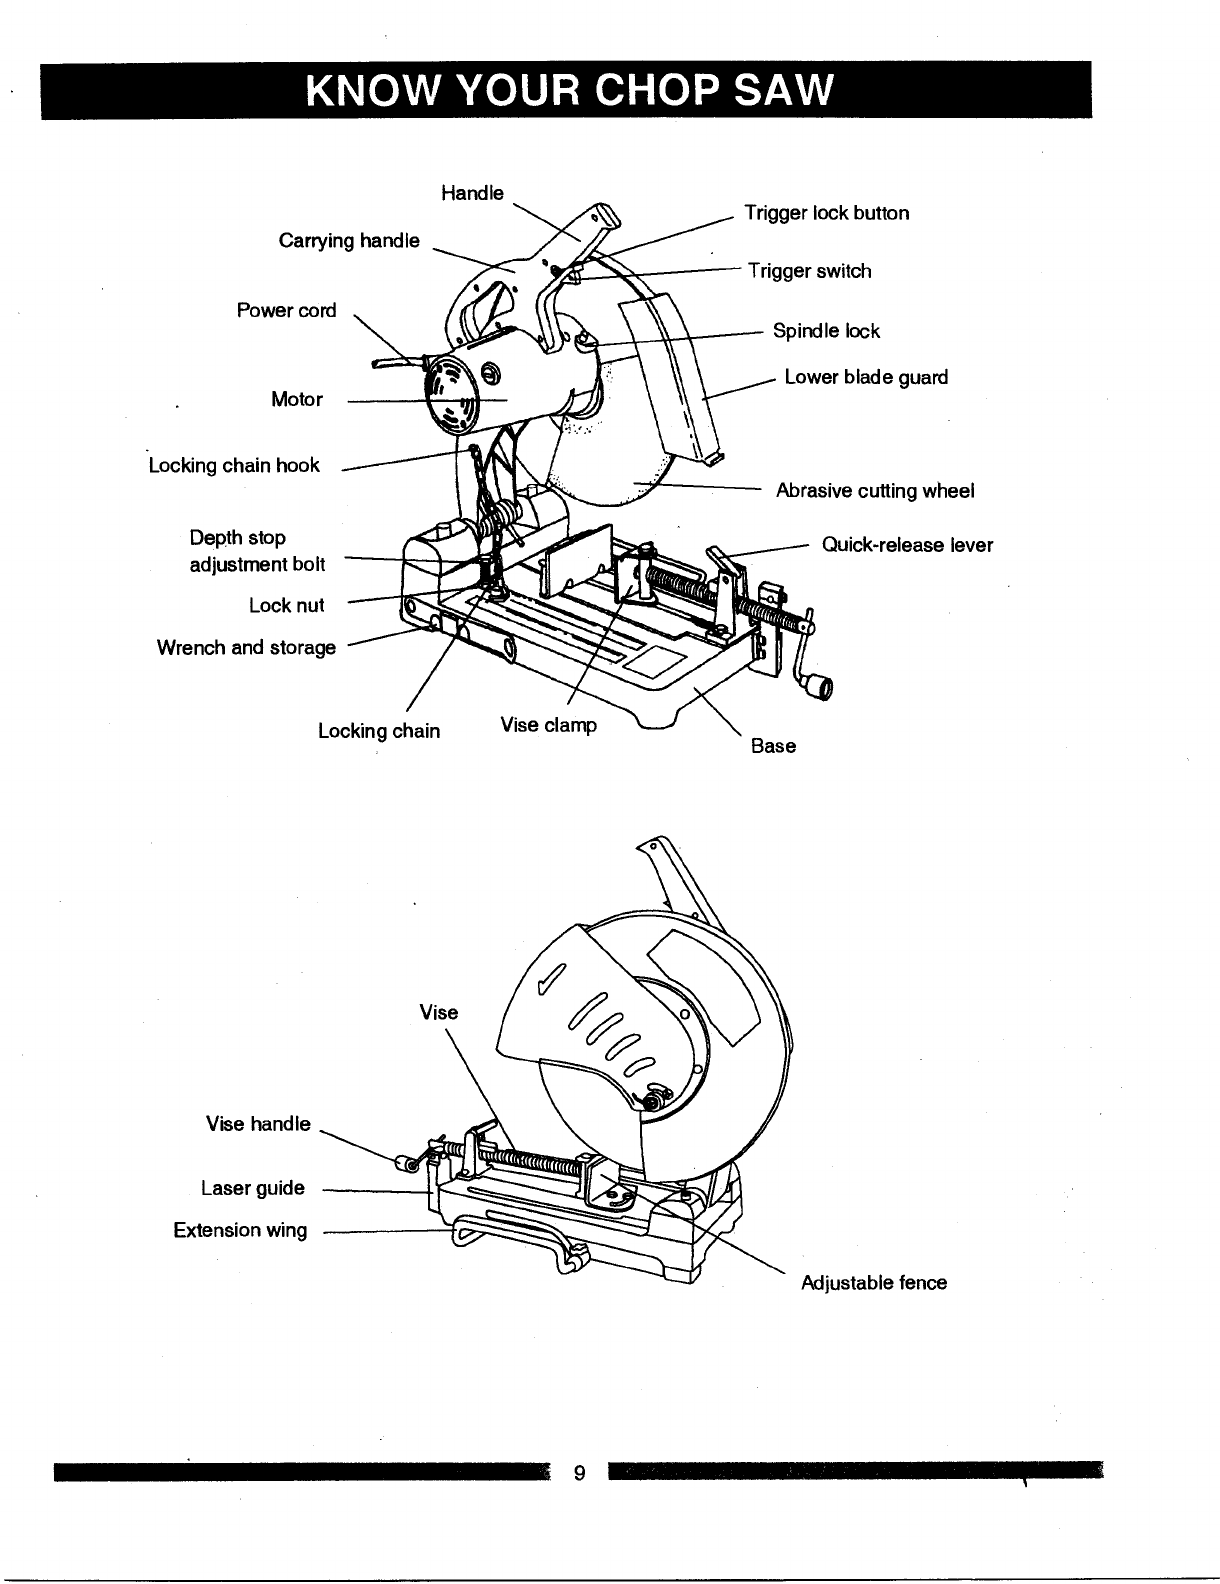 Craftsman 137212890 User Manual ABRASIVE CHOP SAW Manuals